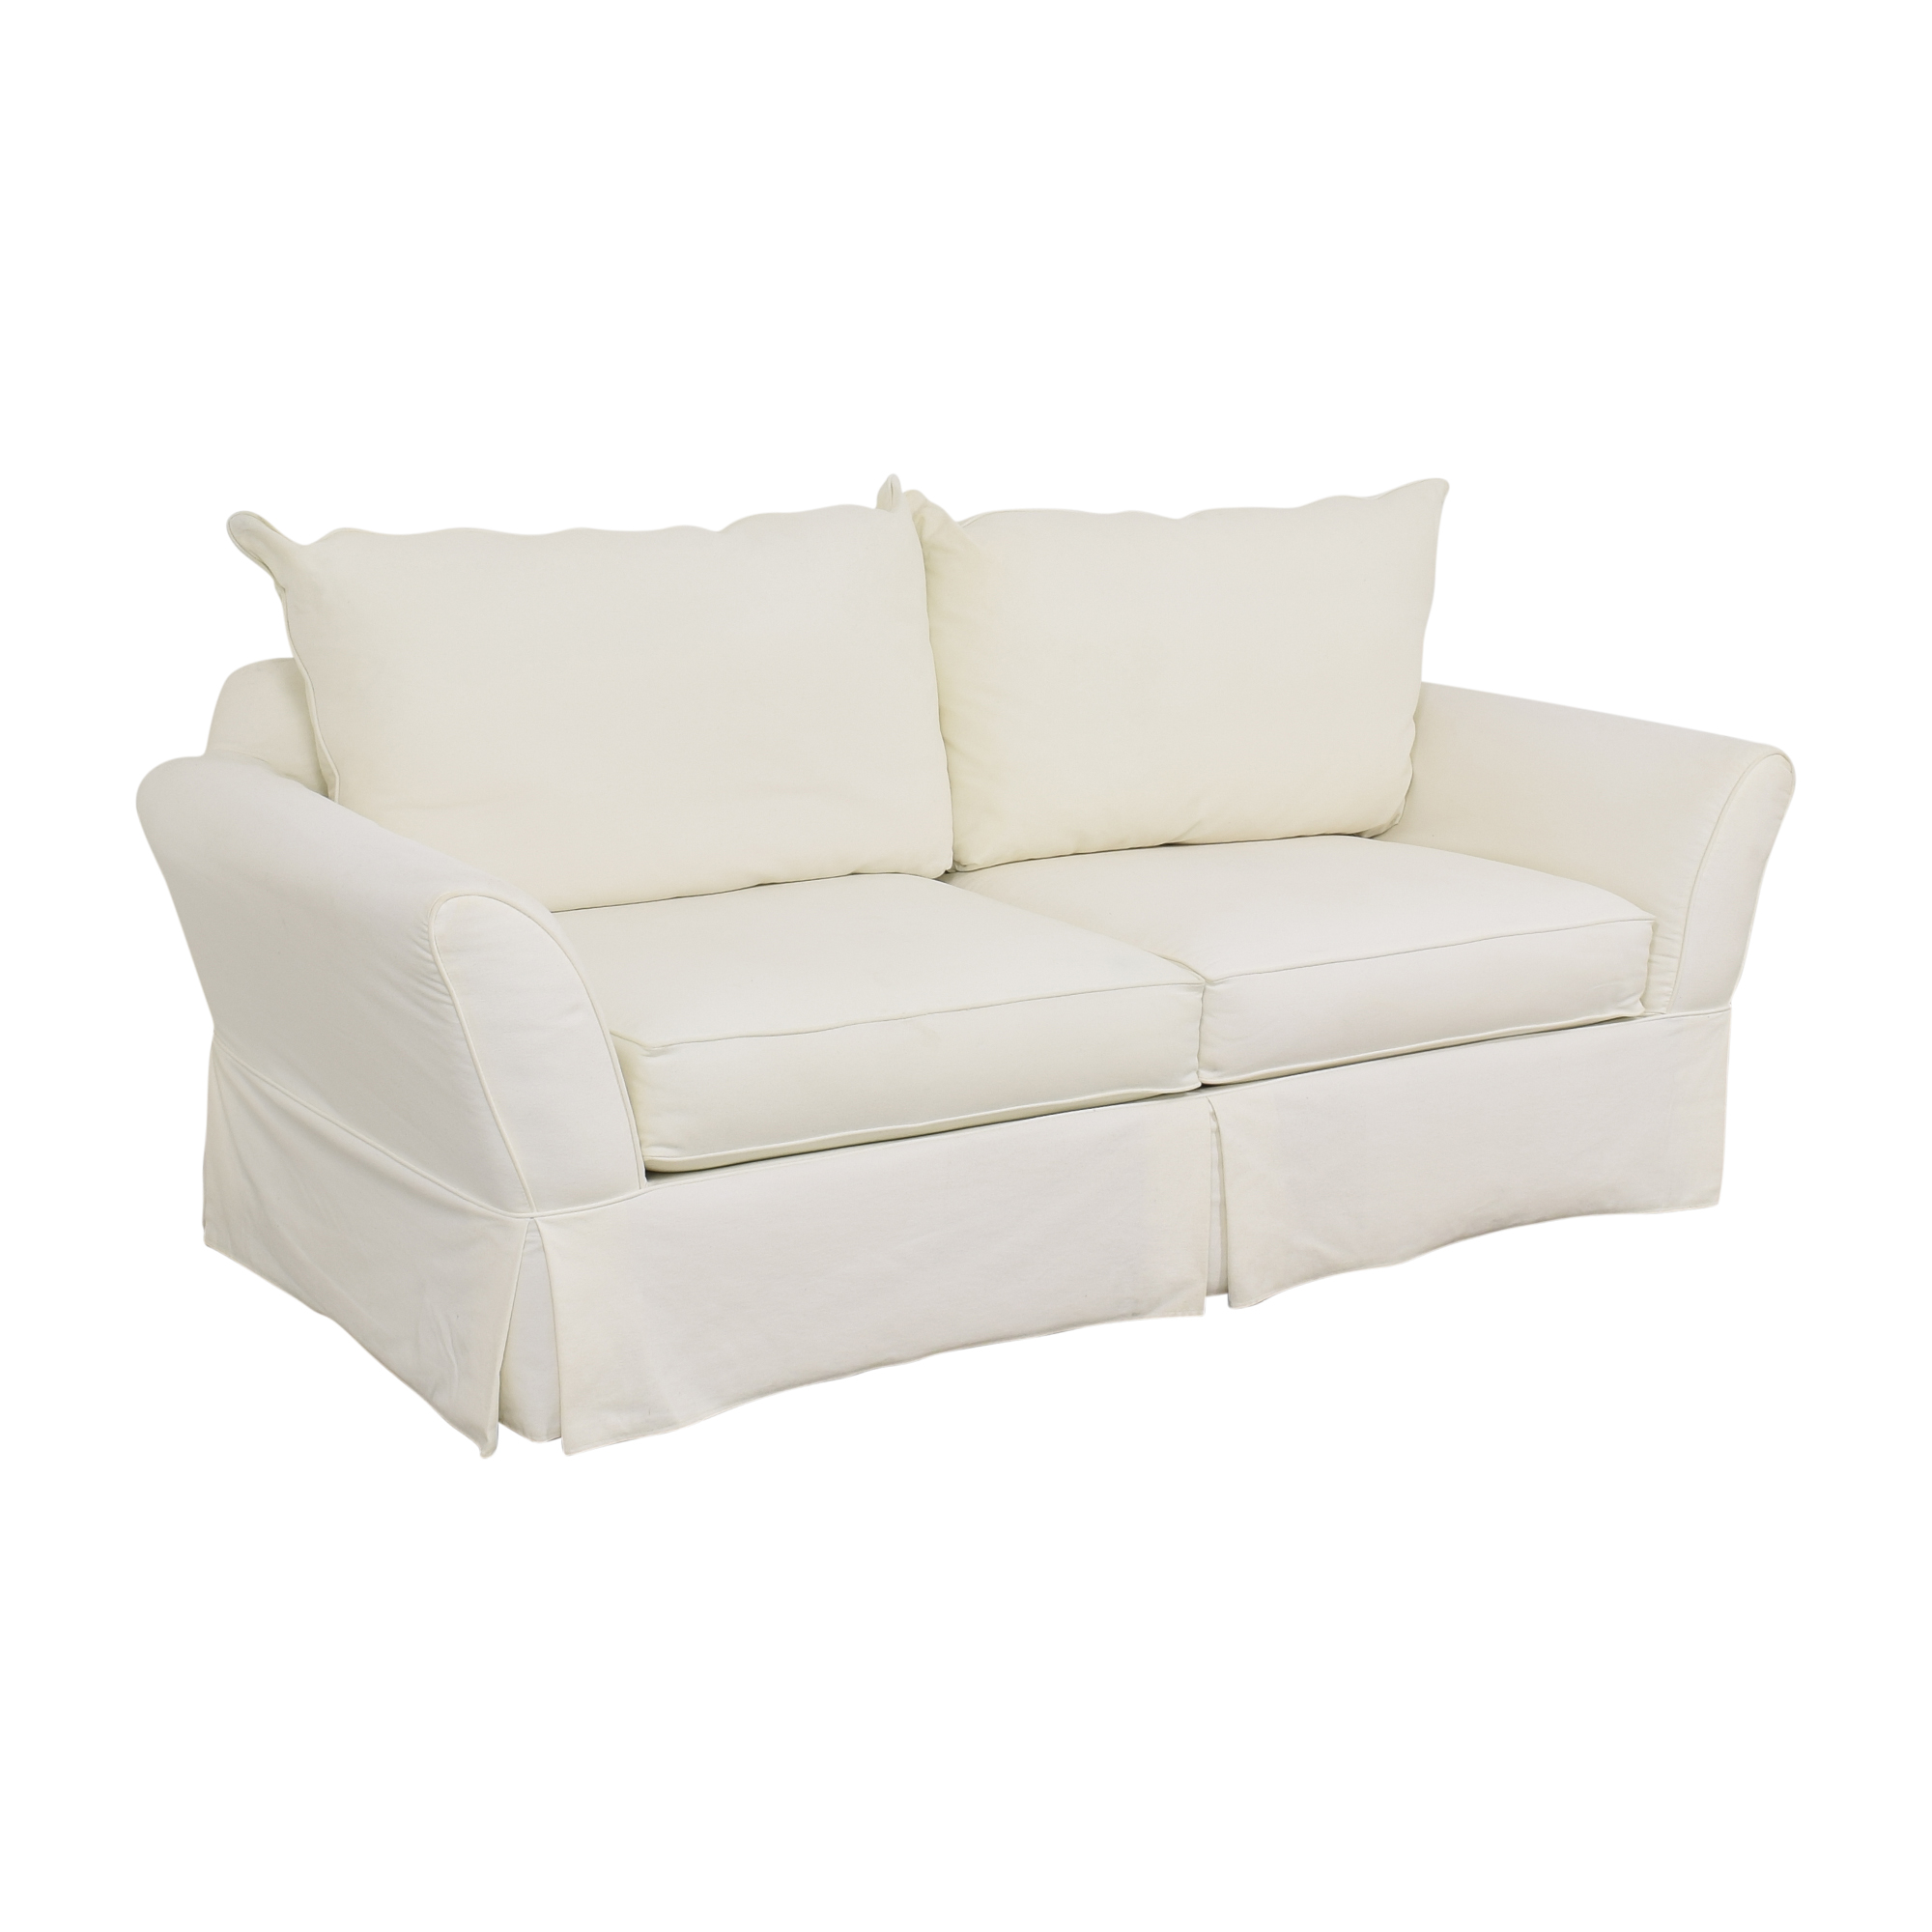 American Signature American Signature Two Cushion Sofa Sofas